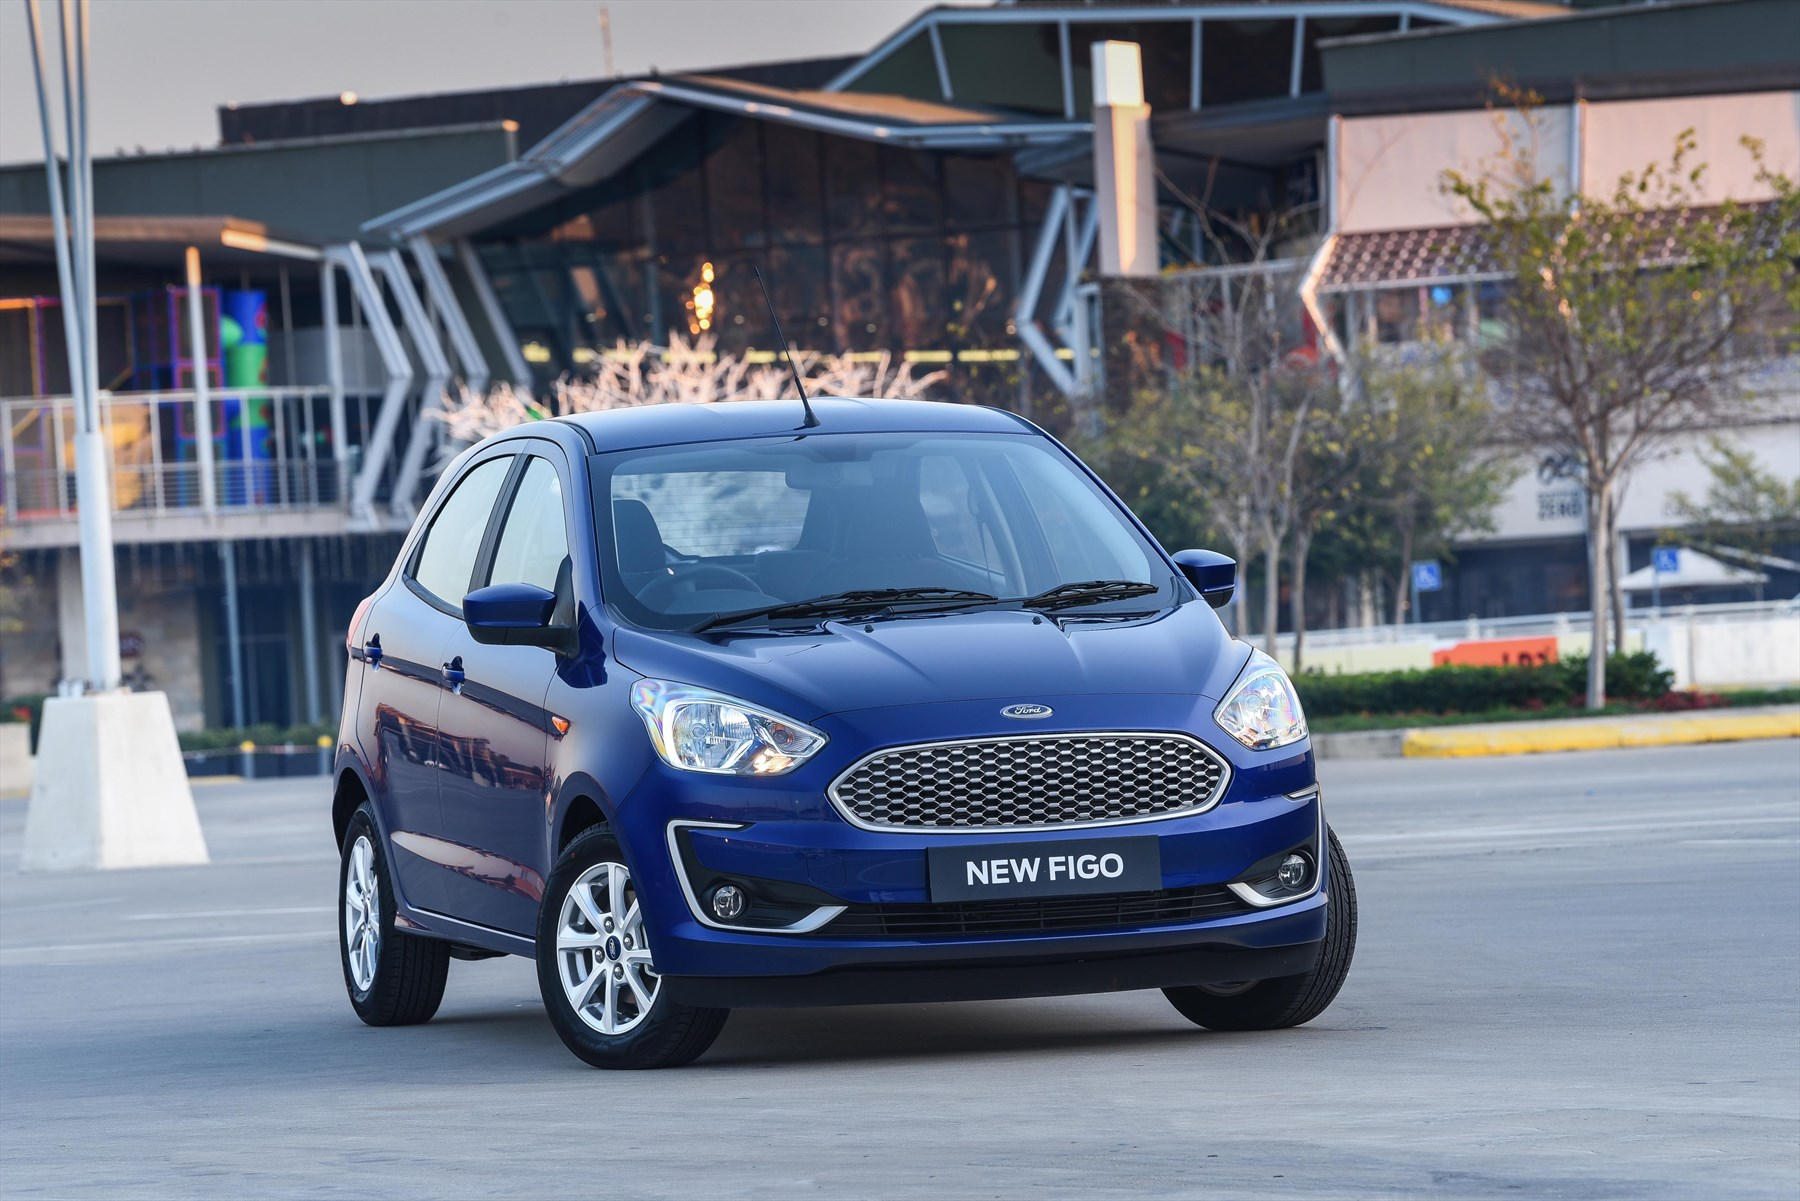 First drive in the Ford Figo - Juliet McGuire launch review